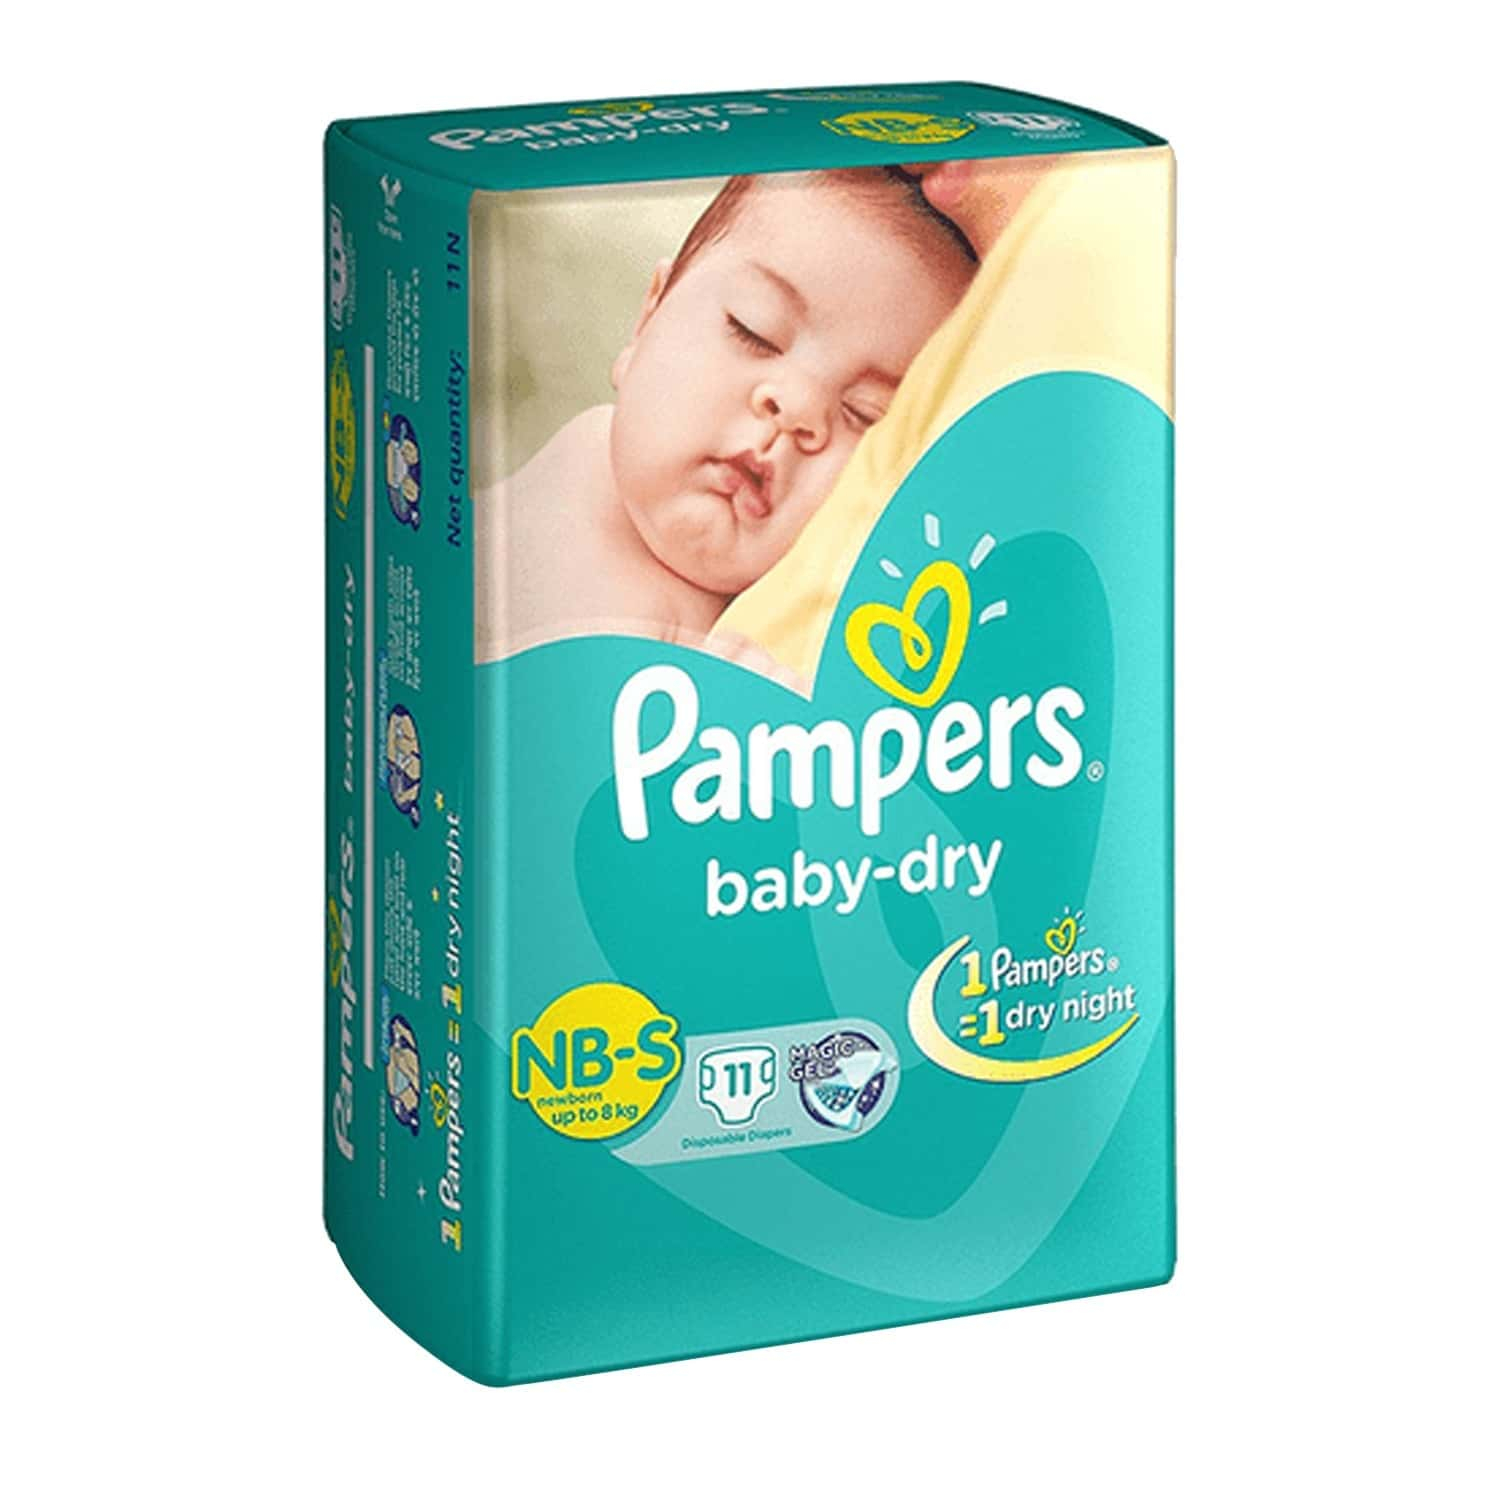 Pampers New Born Small Diapers 11's